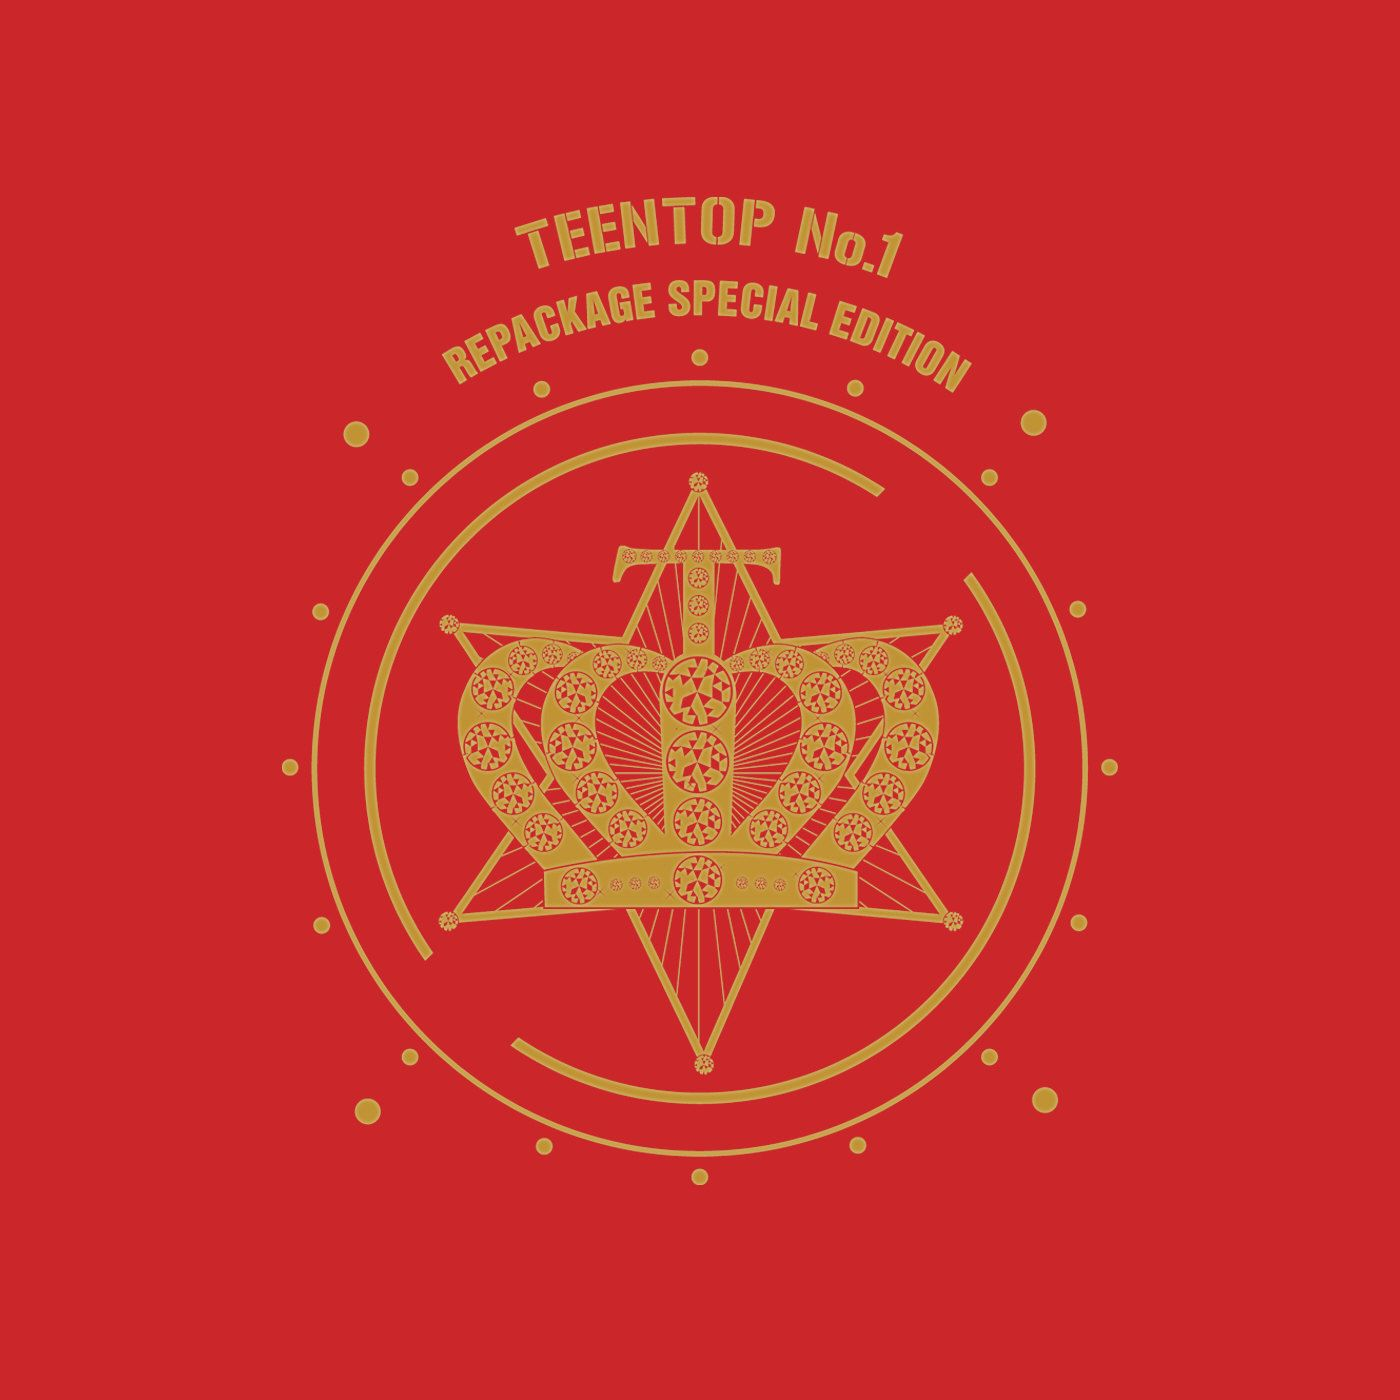 [Album] Teen Top   No.1 [Repackage Special Edition]